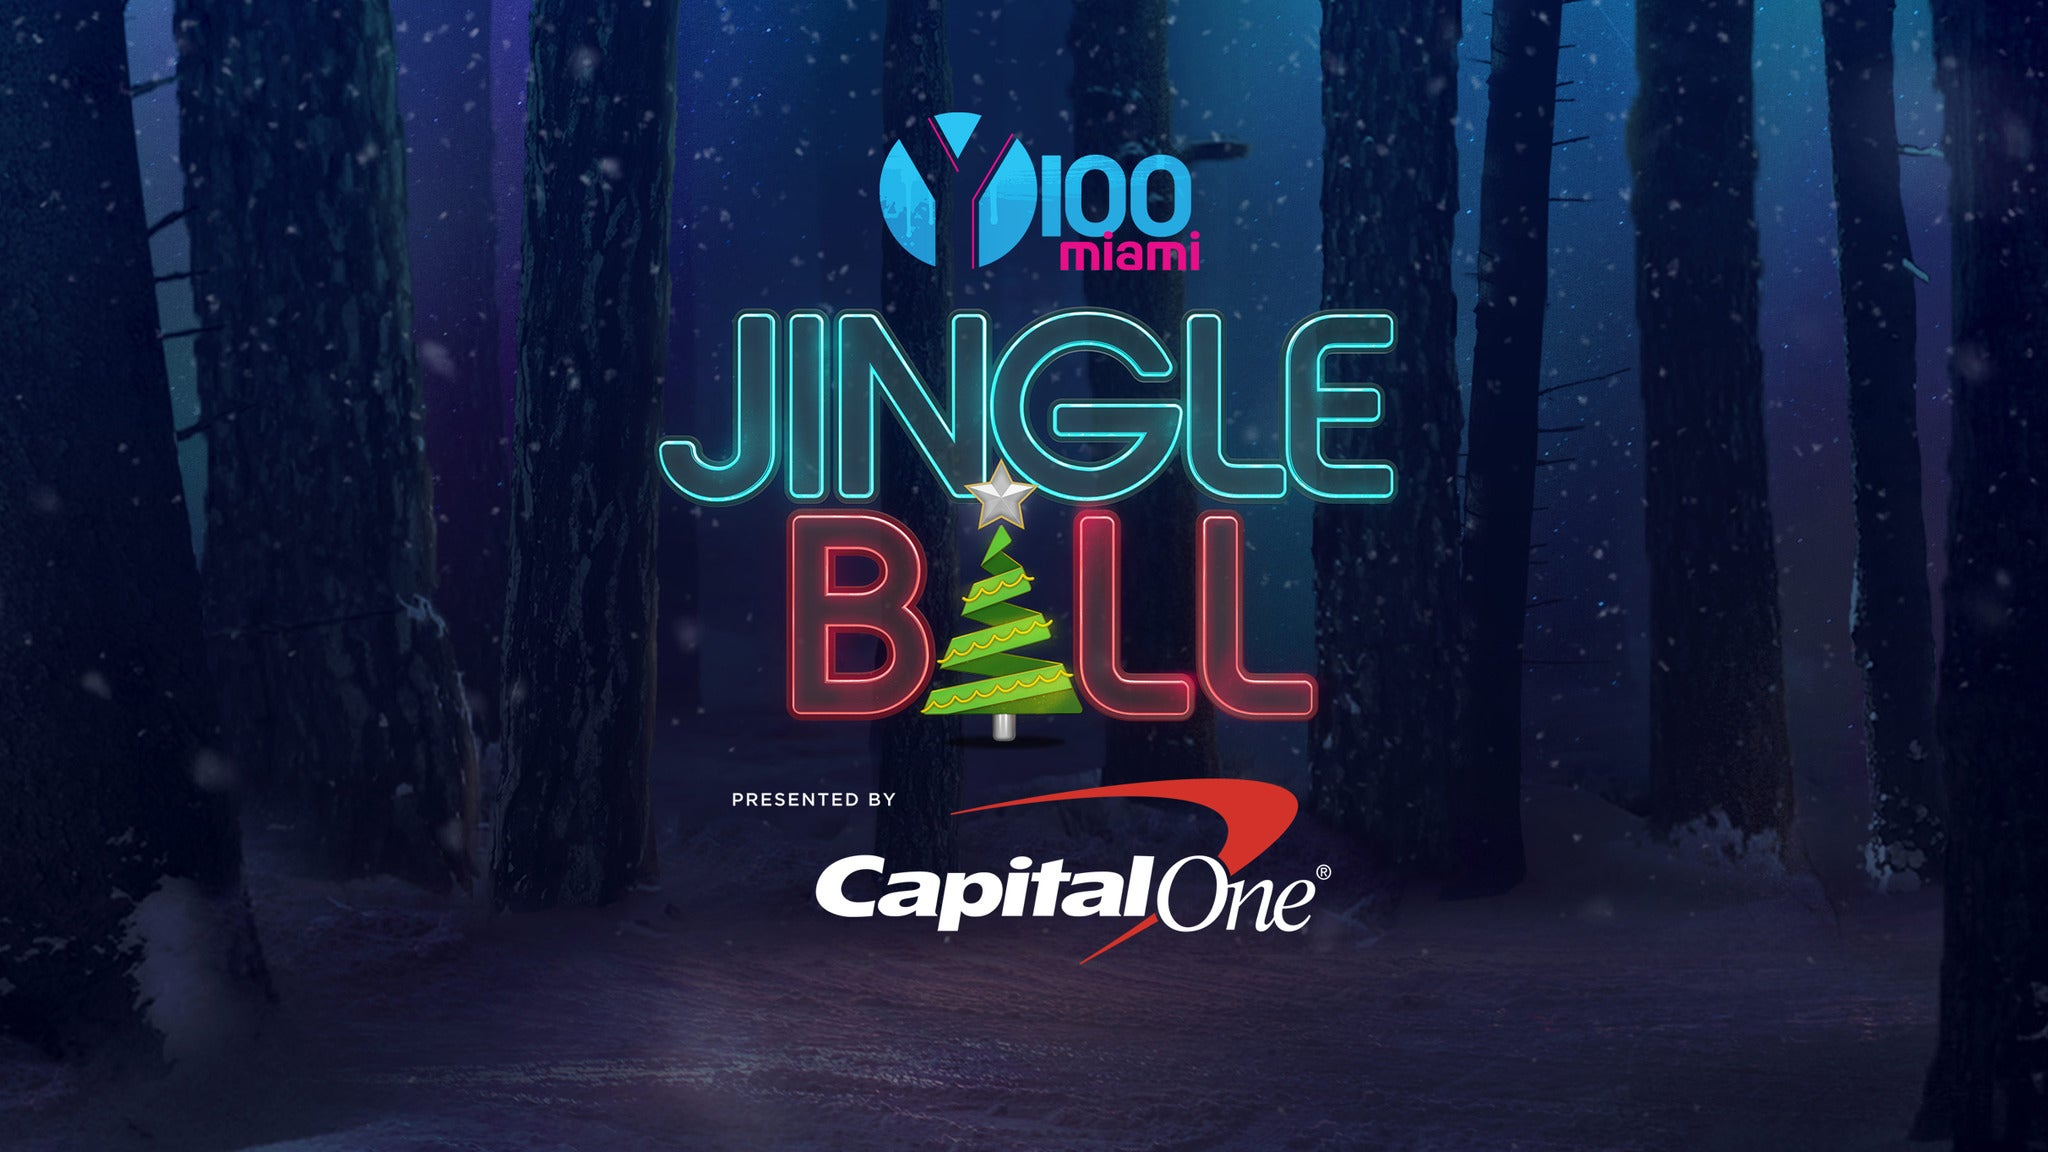 Y100 Jingle Ball Presented By Capital One at BB&T Center